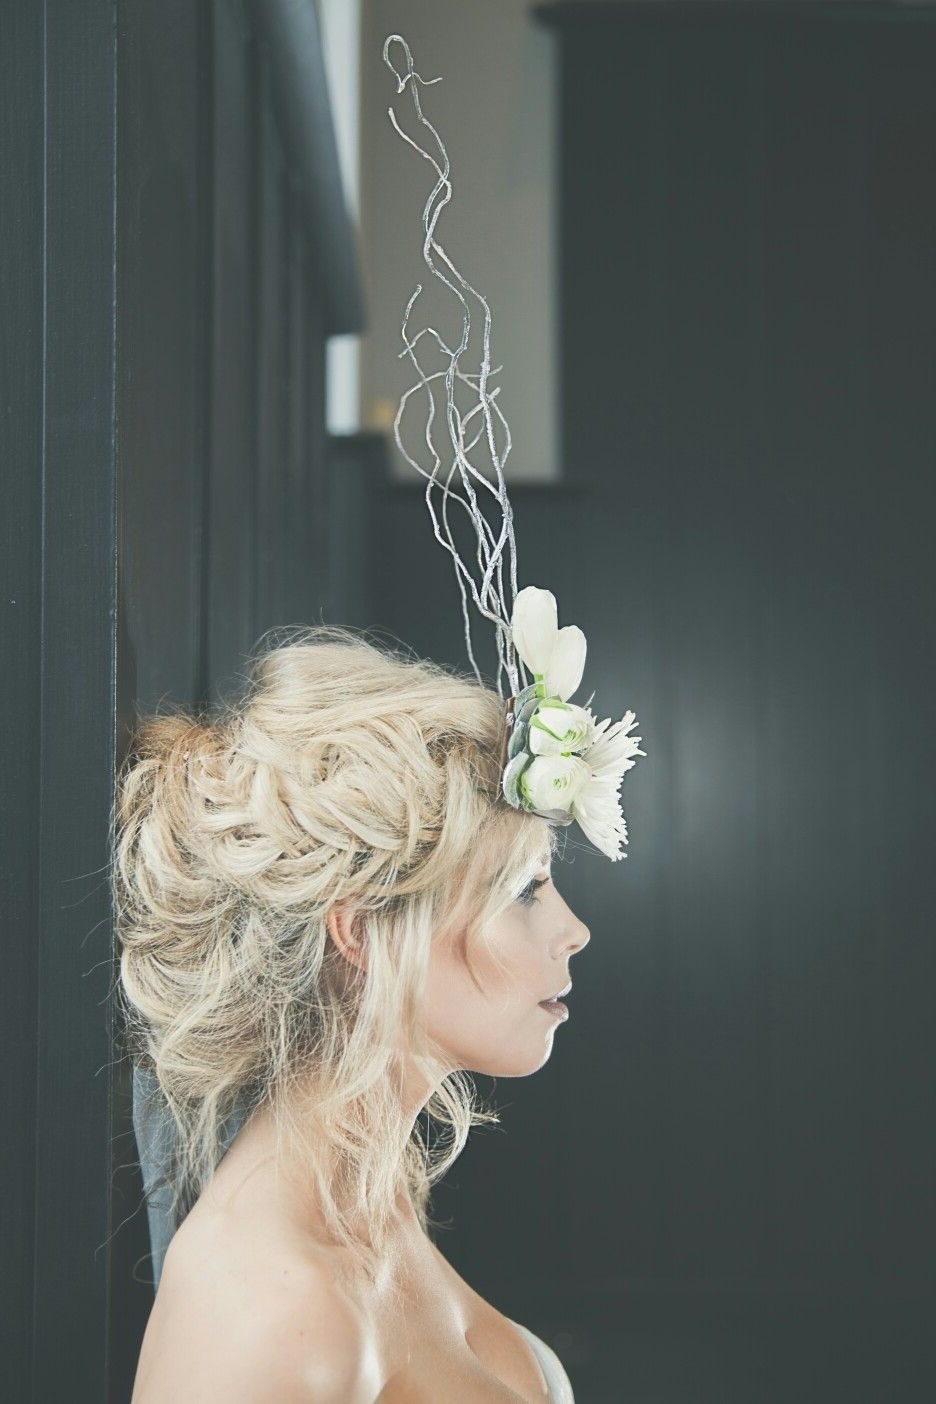 Crimped Hair Blonde Wedding Hairstyle Fishtail Plait Flower Crown Throughout Newest White Wedding Blonde Hairstyles (View 2 of 20)